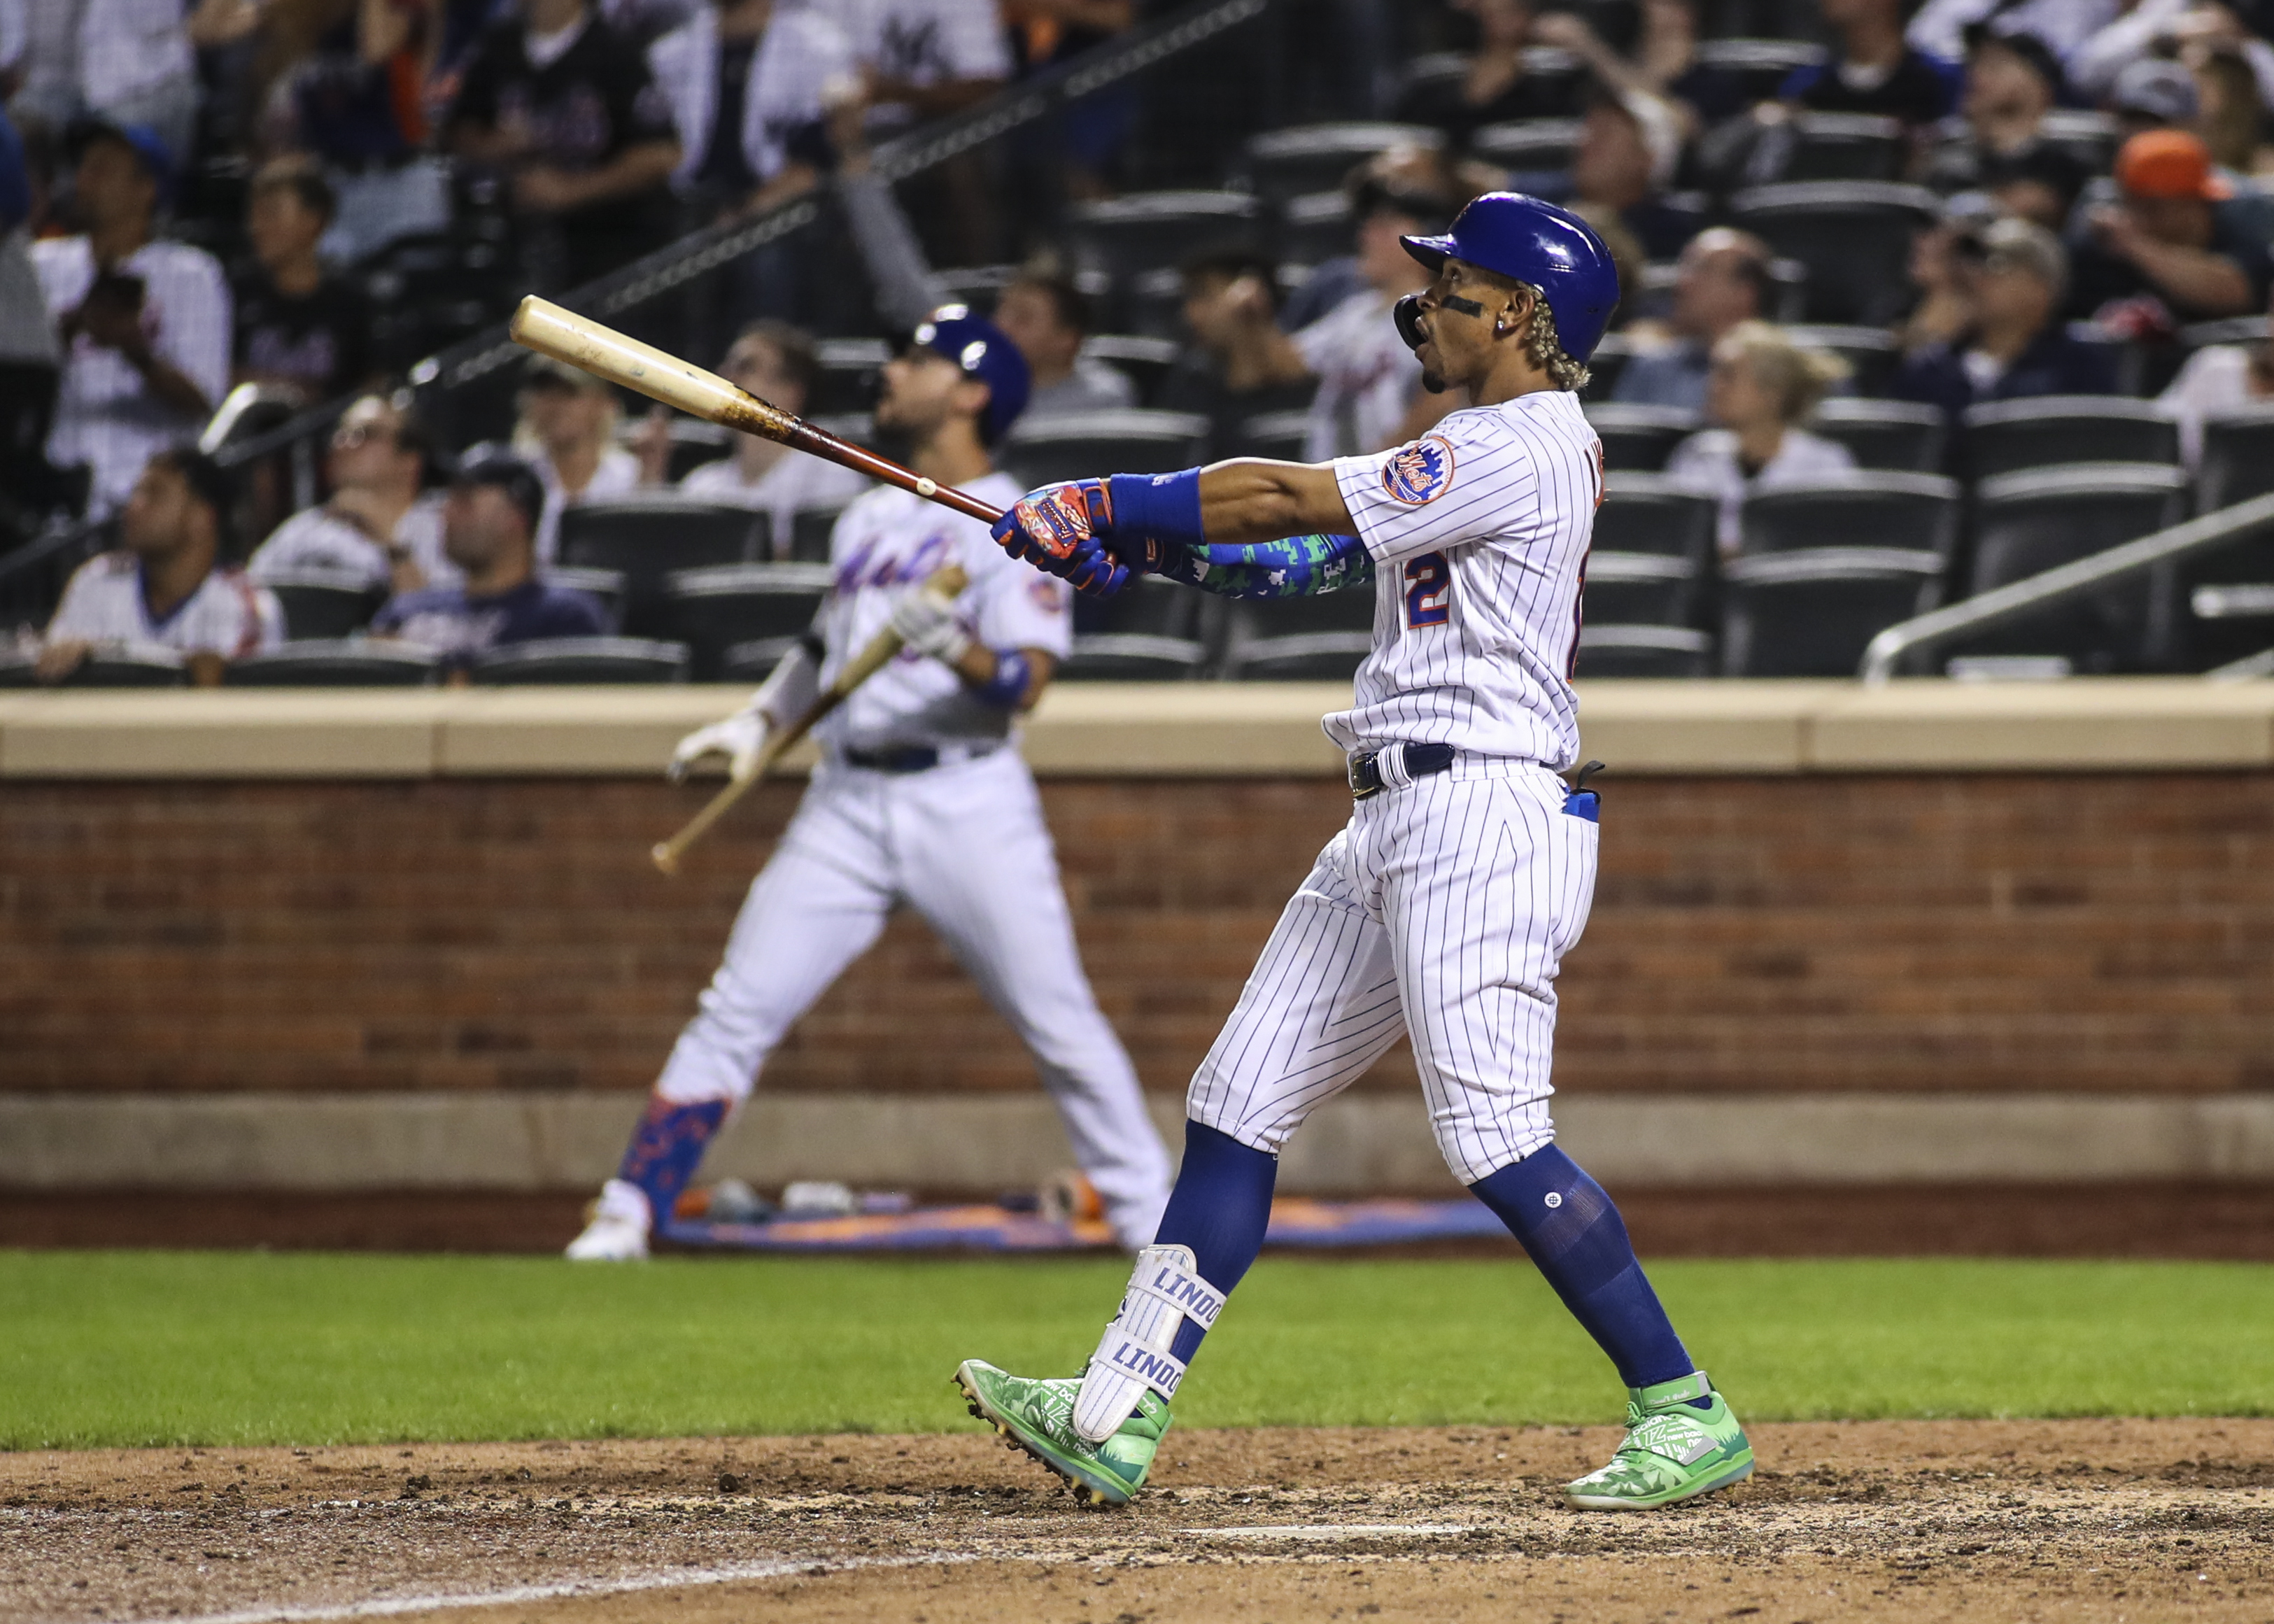 9/13/21 Game Preview: St. Louis Cardinals at New York Mets